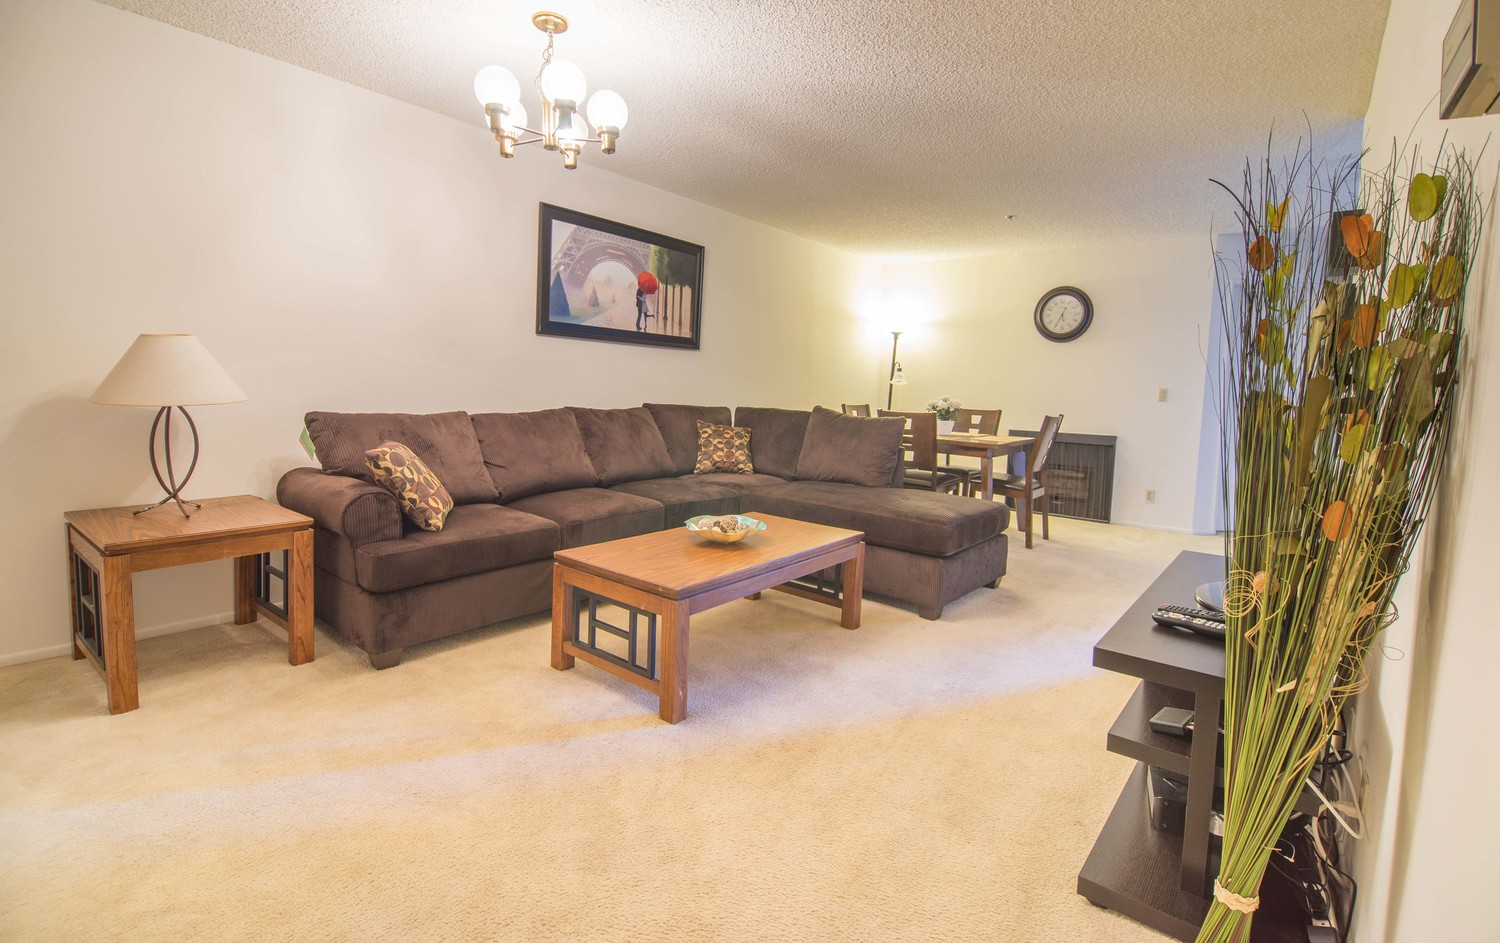 2Bed 2Bath Private Rooms for Rent in Barrington Plaza